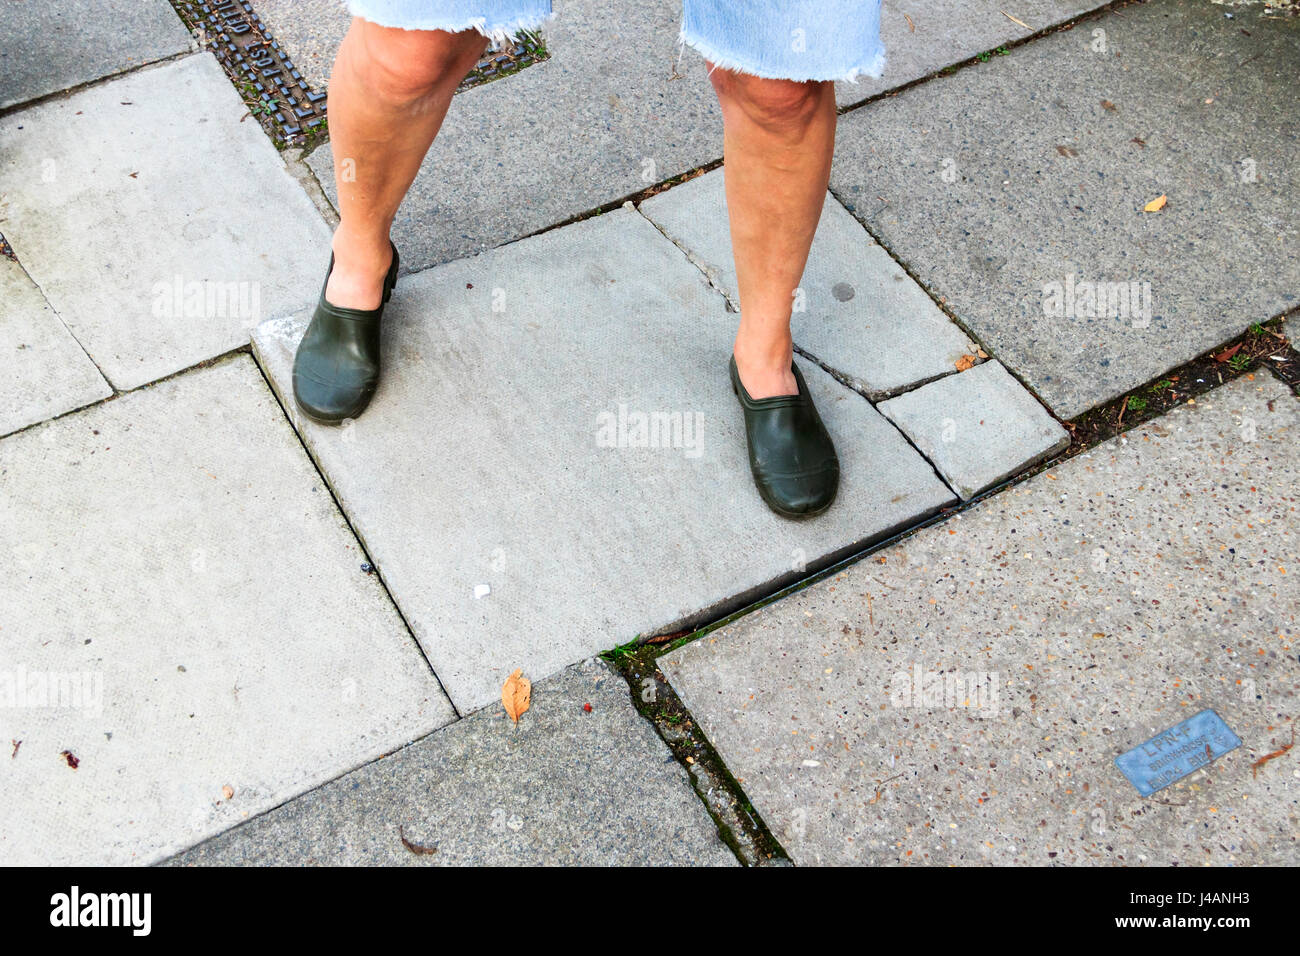 A woman with bare legs standing on a cracked paving stone, Islington, London, UK - Stock Image